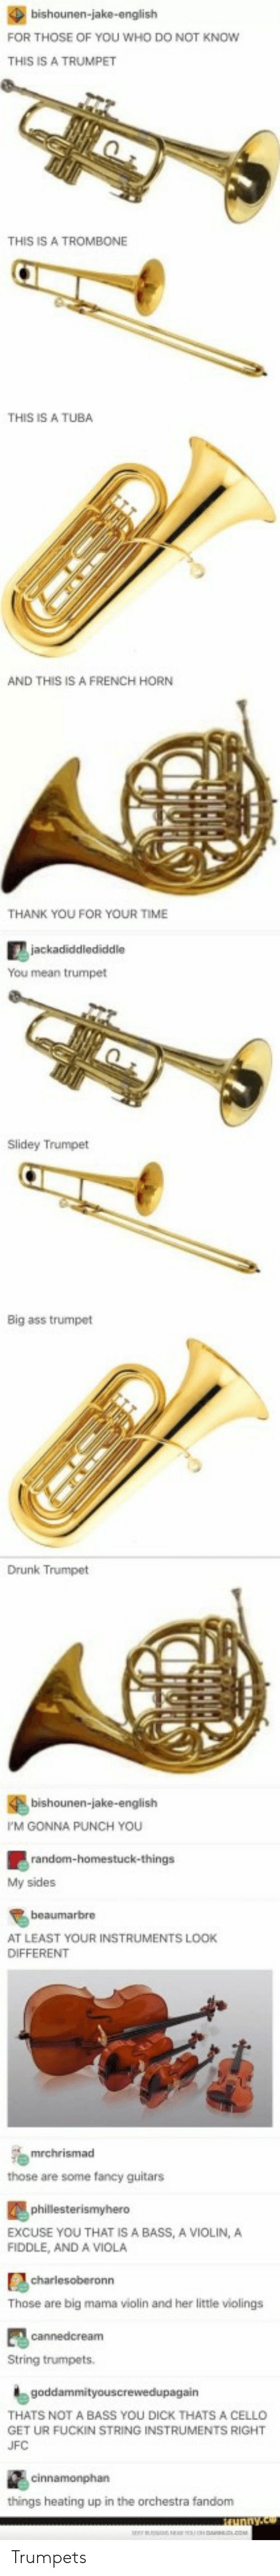 viola: FOR THOSE OF YOU WHO DO NOT KNOW  THIS IS A TRUMPET  THIS IS A TROMBONE  THIS IS A TUBA  AND THIS IS A FRENCH HORN  THANK YOU FOR YOUR TIME  You mean trumpet  Slidey Trumpet  Big ass trumpet  Drunk Trumpet  bishounen-jake-english  M GONNA PUNCH YOU  My sides  beaumarbre  AT LEAST YOUR INSTRUMENTS LOOK  DIFFERENT  those are some fancy guitars  EXCUSE YOU THAT IS A BASS, A VIOLIN, A  FIDDLE, AND A VIOLA  Those are big mama violin and her little violings  String trumpets.  THATS NOT A BASS YOU DICK THATS A CELLO  GET UR FUCKIN STRING INSTRUMENTS RIGHT  UFC  things heating up in the orchestra fandonm Trumpets